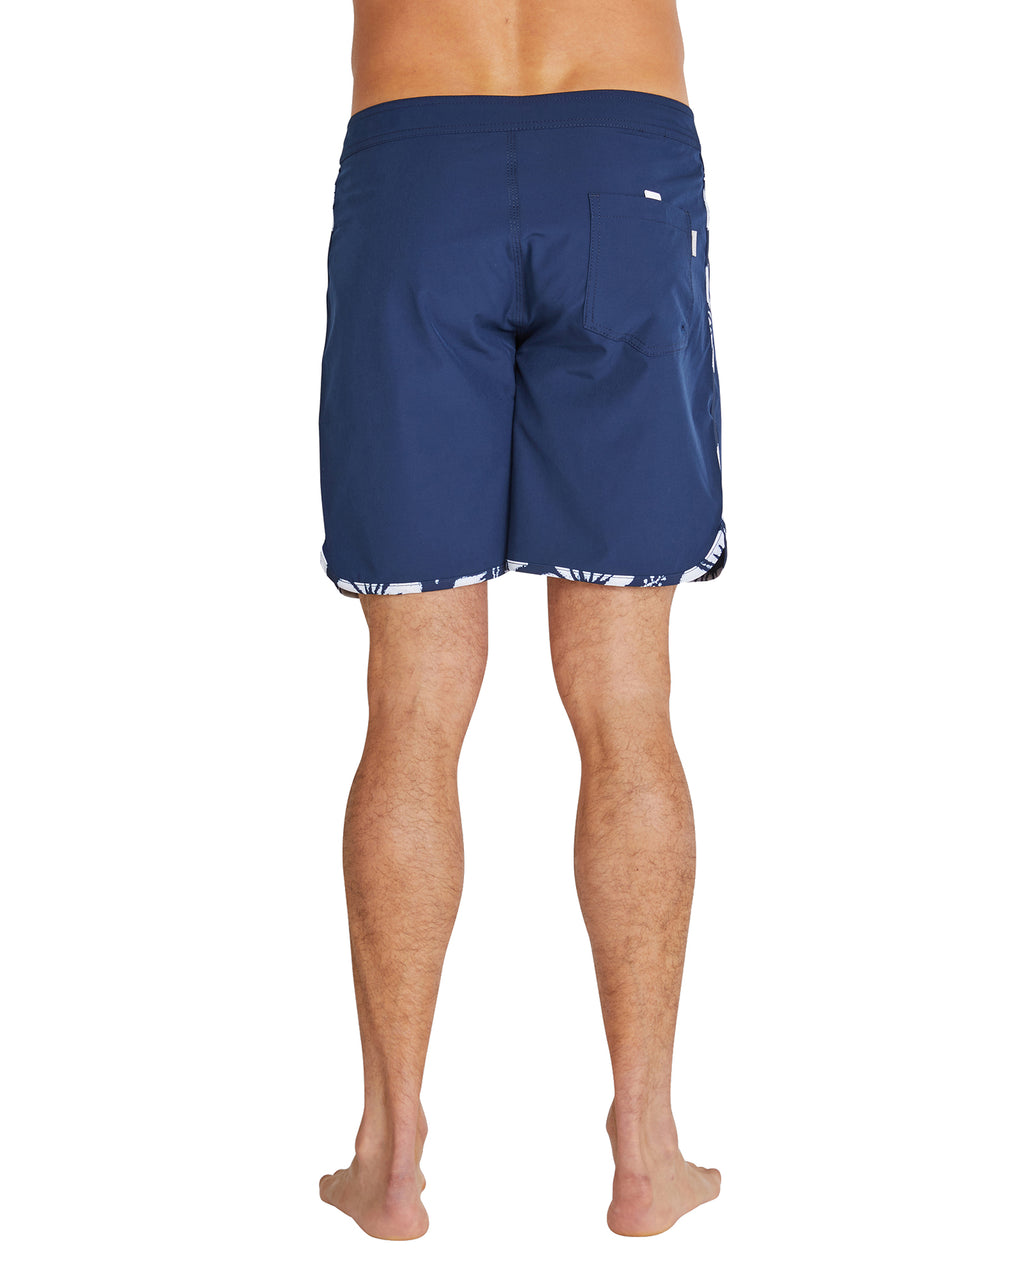 Board Shorts - Retro Boardrider Bind - Navy